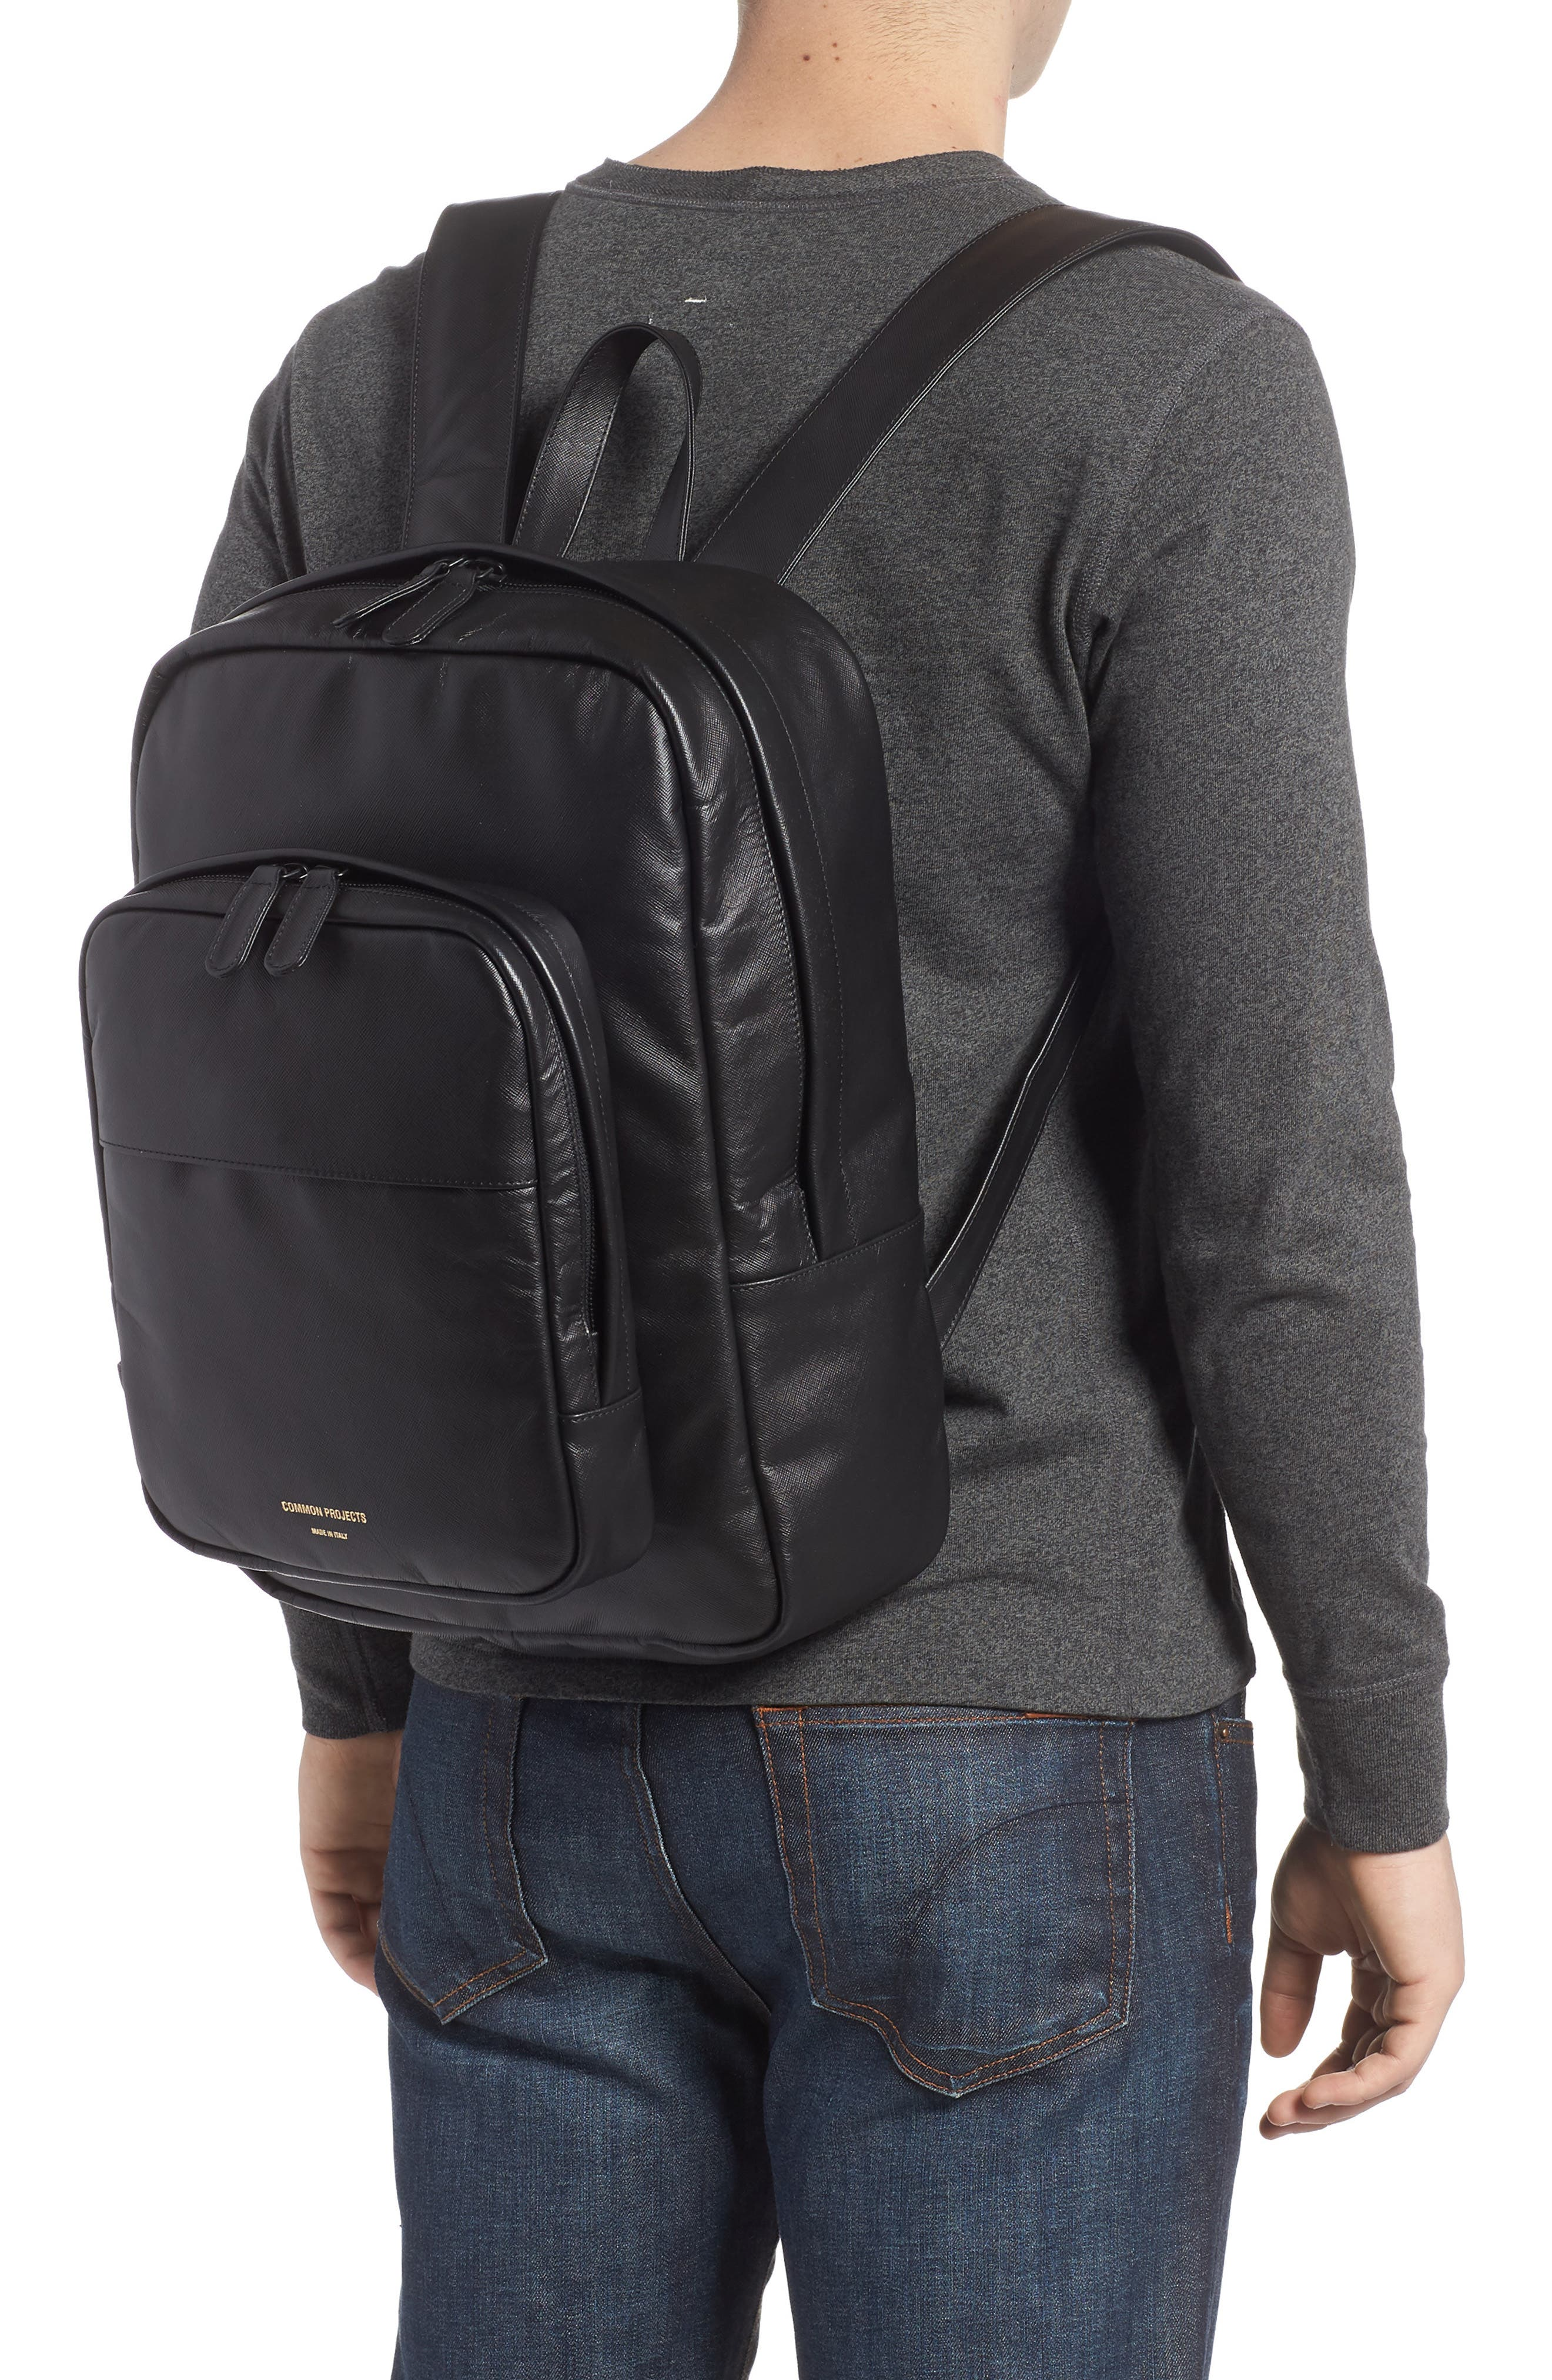 Saffiano Leather Backpack,                             Alternate thumbnail 2, color,                             Black